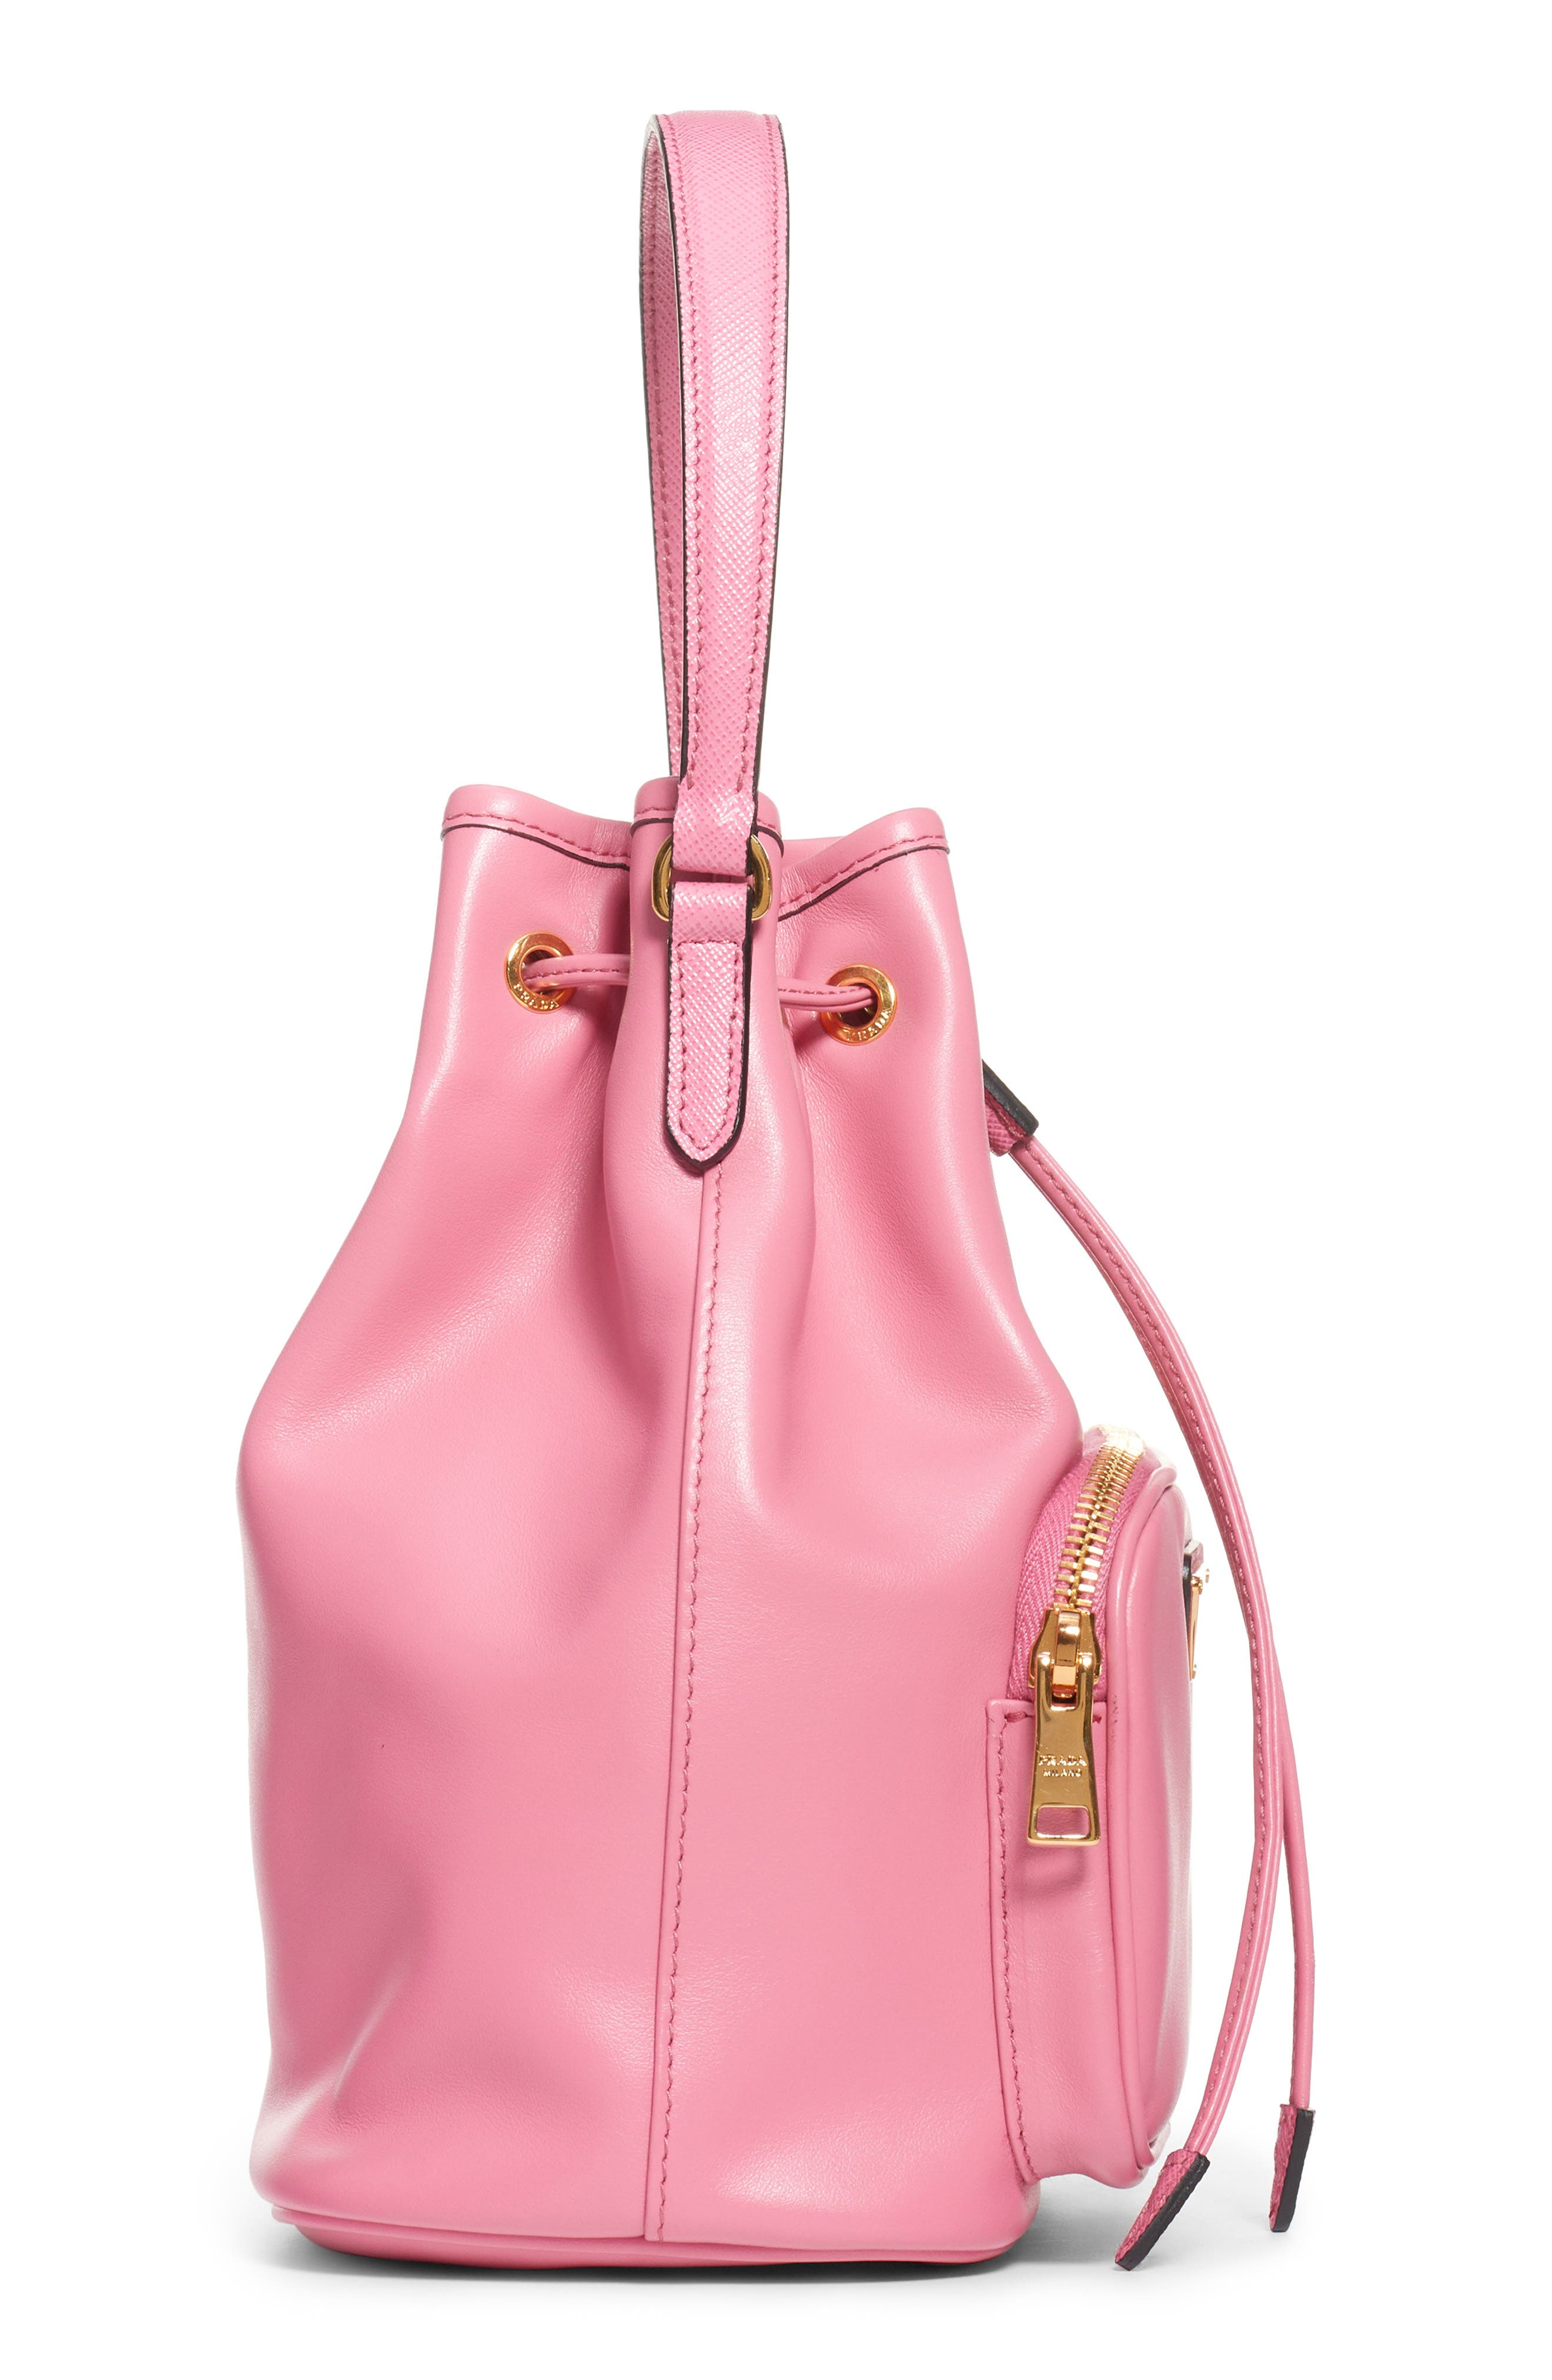 PRADA,                             Leather Bucket Bag,                             Alternate thumbnail 3, color,                             BEGONIA